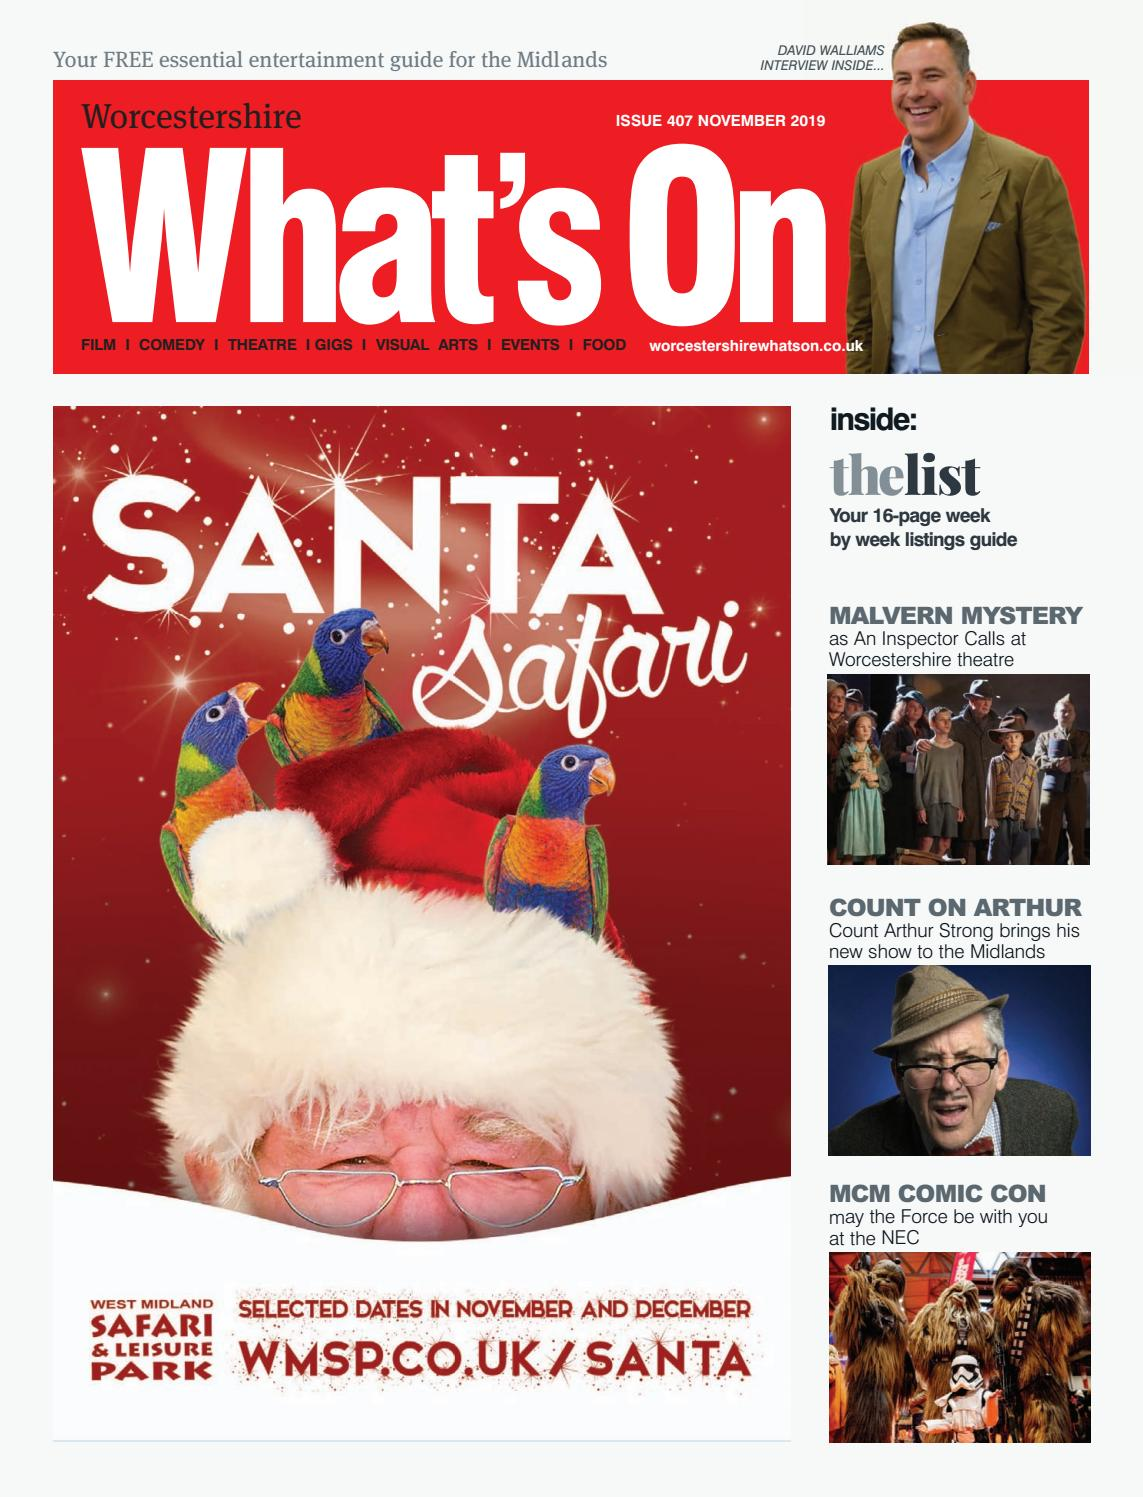 Worcestershire Whats On November 2019 By Whats On Magazine